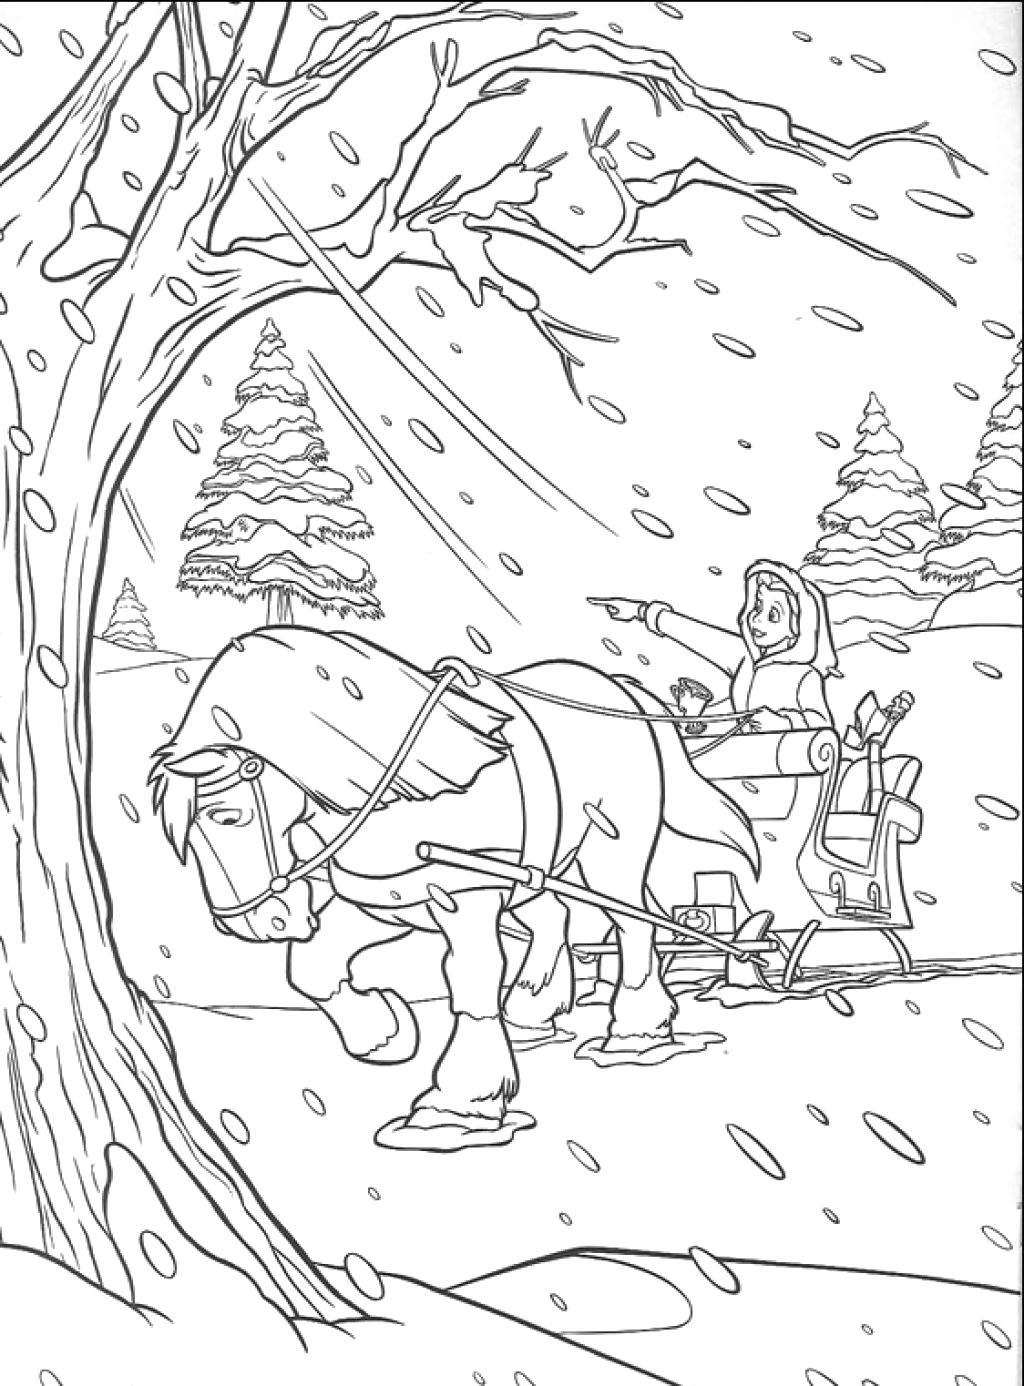 Travel In The Snow Coloring Pages Princess Coloring Pages Disney Princess Coloring Pages Disney Princess Colors